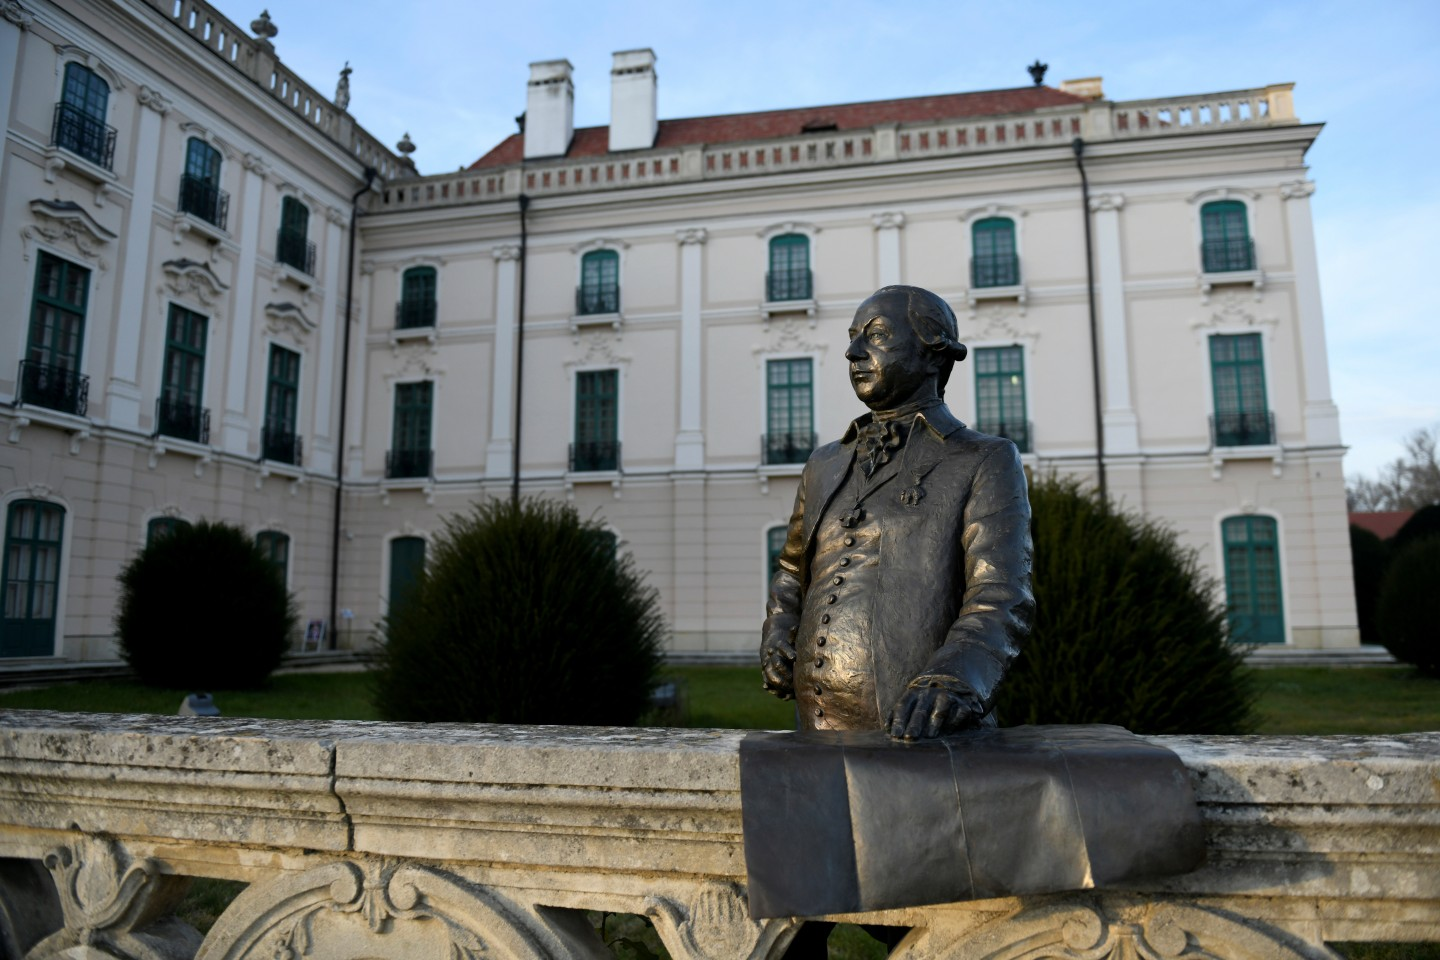 Hungary was among the earliest socialist countries to embrace economic reform. The picture shows the statue of Prince Miklos Esterhazy in the gardens of the Esterhazy palace in Fertod, Hungary. (Tamas Kaszas/Reuters)